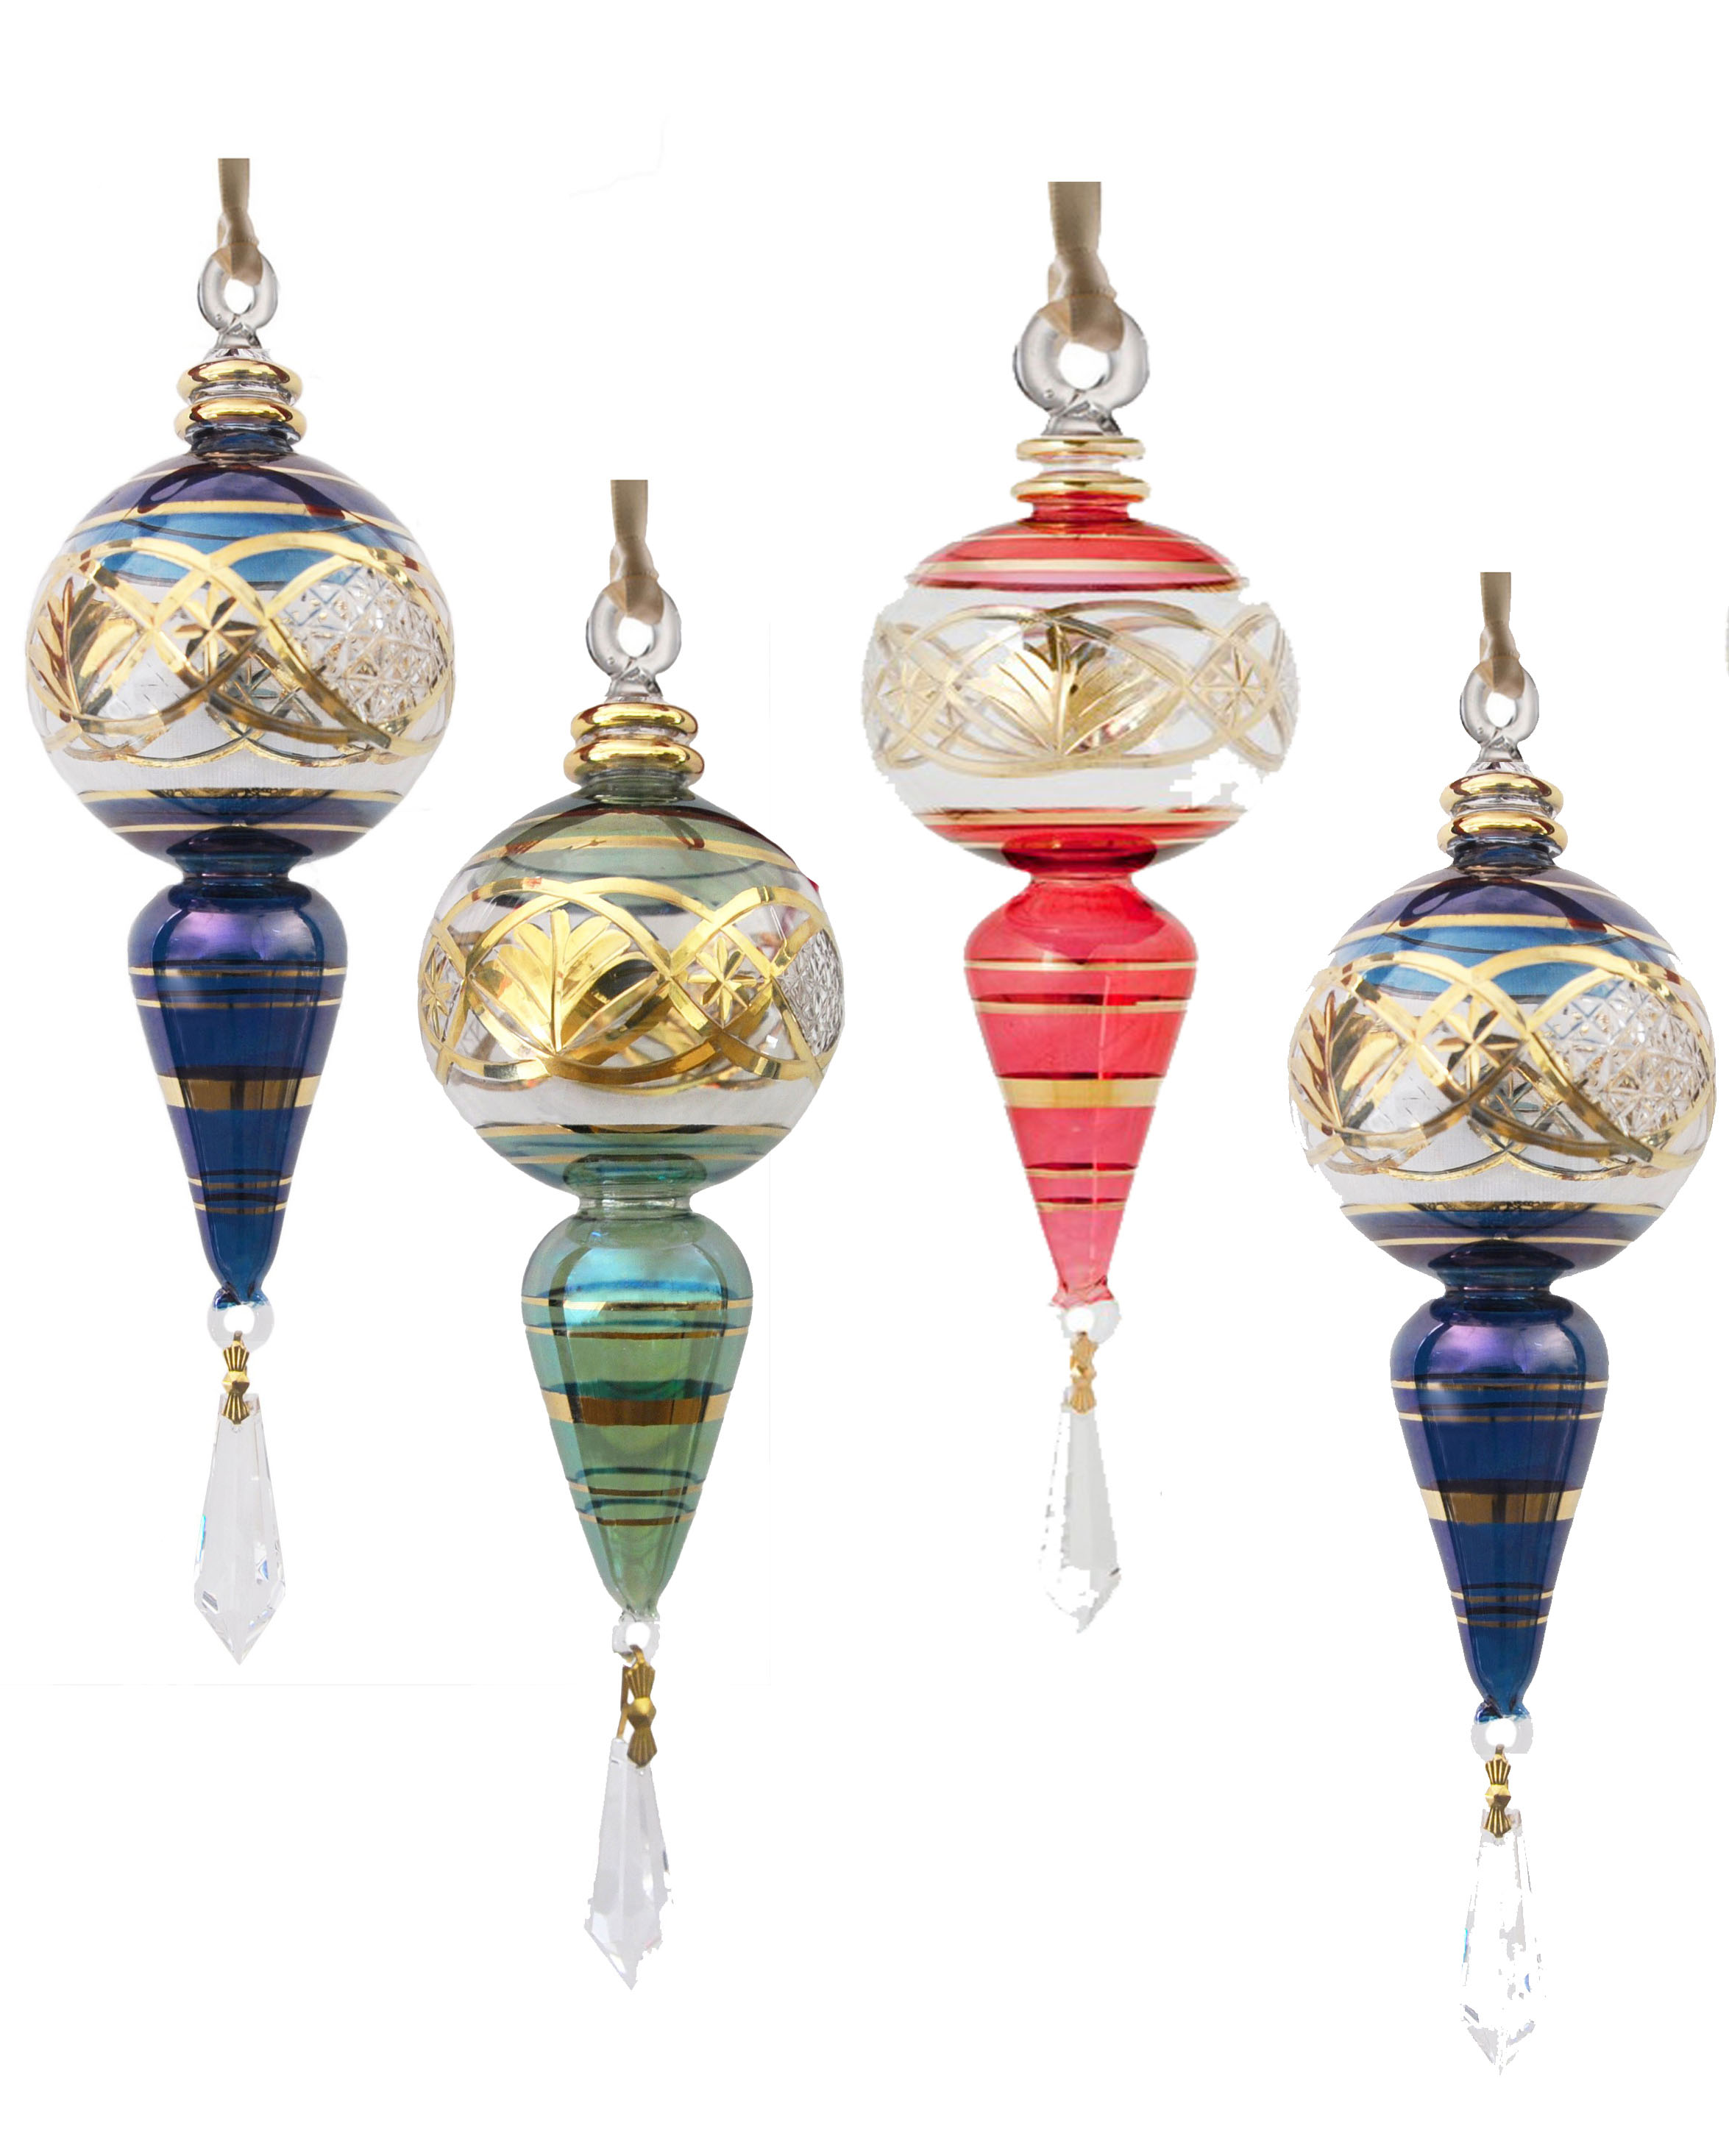 4 Hand Blown Glass Ornaments with crystal drop